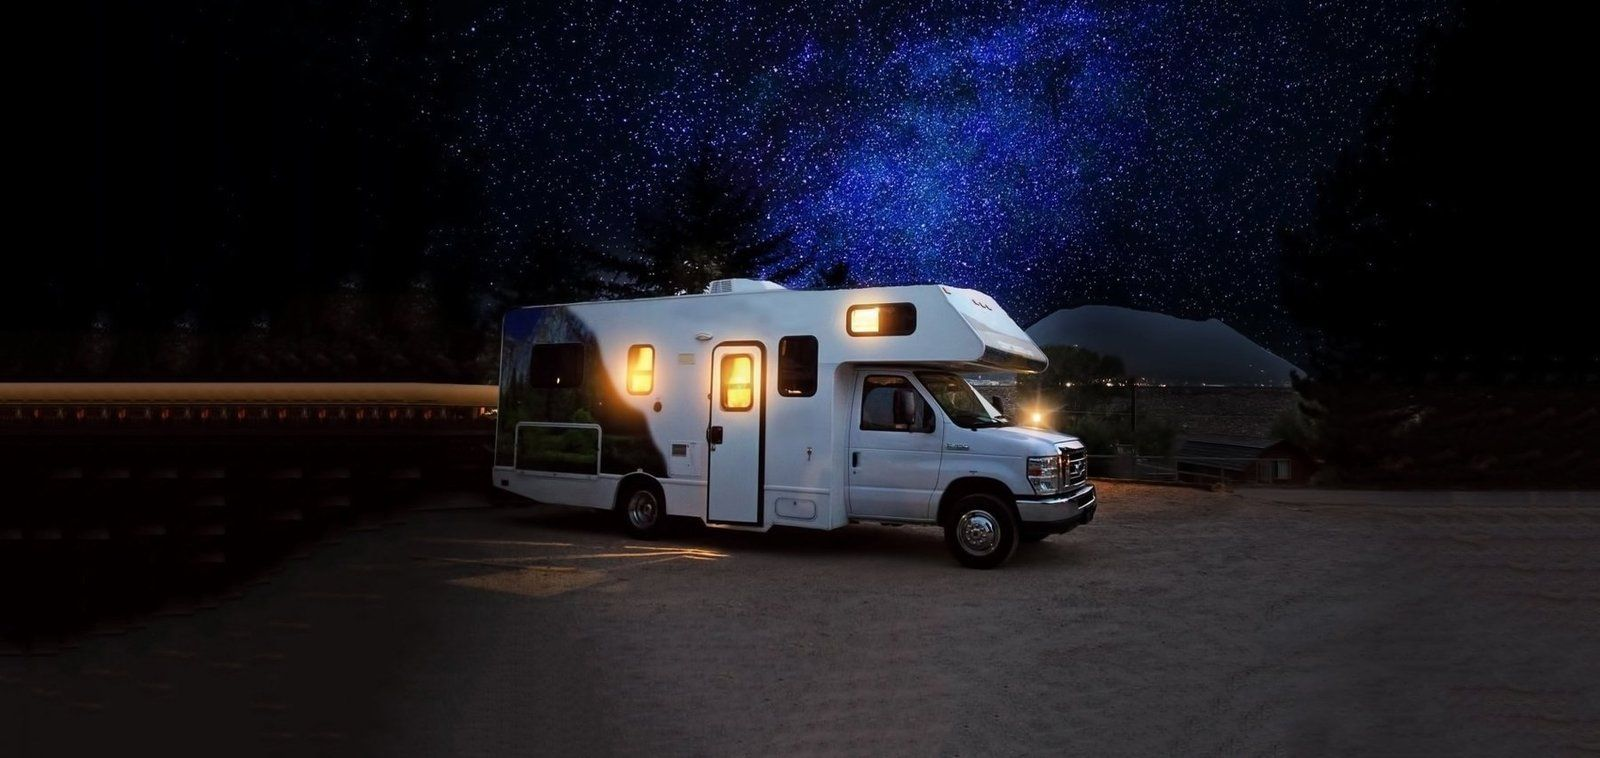 How to find the best and the cheapest Campgrounds and RV Parks?